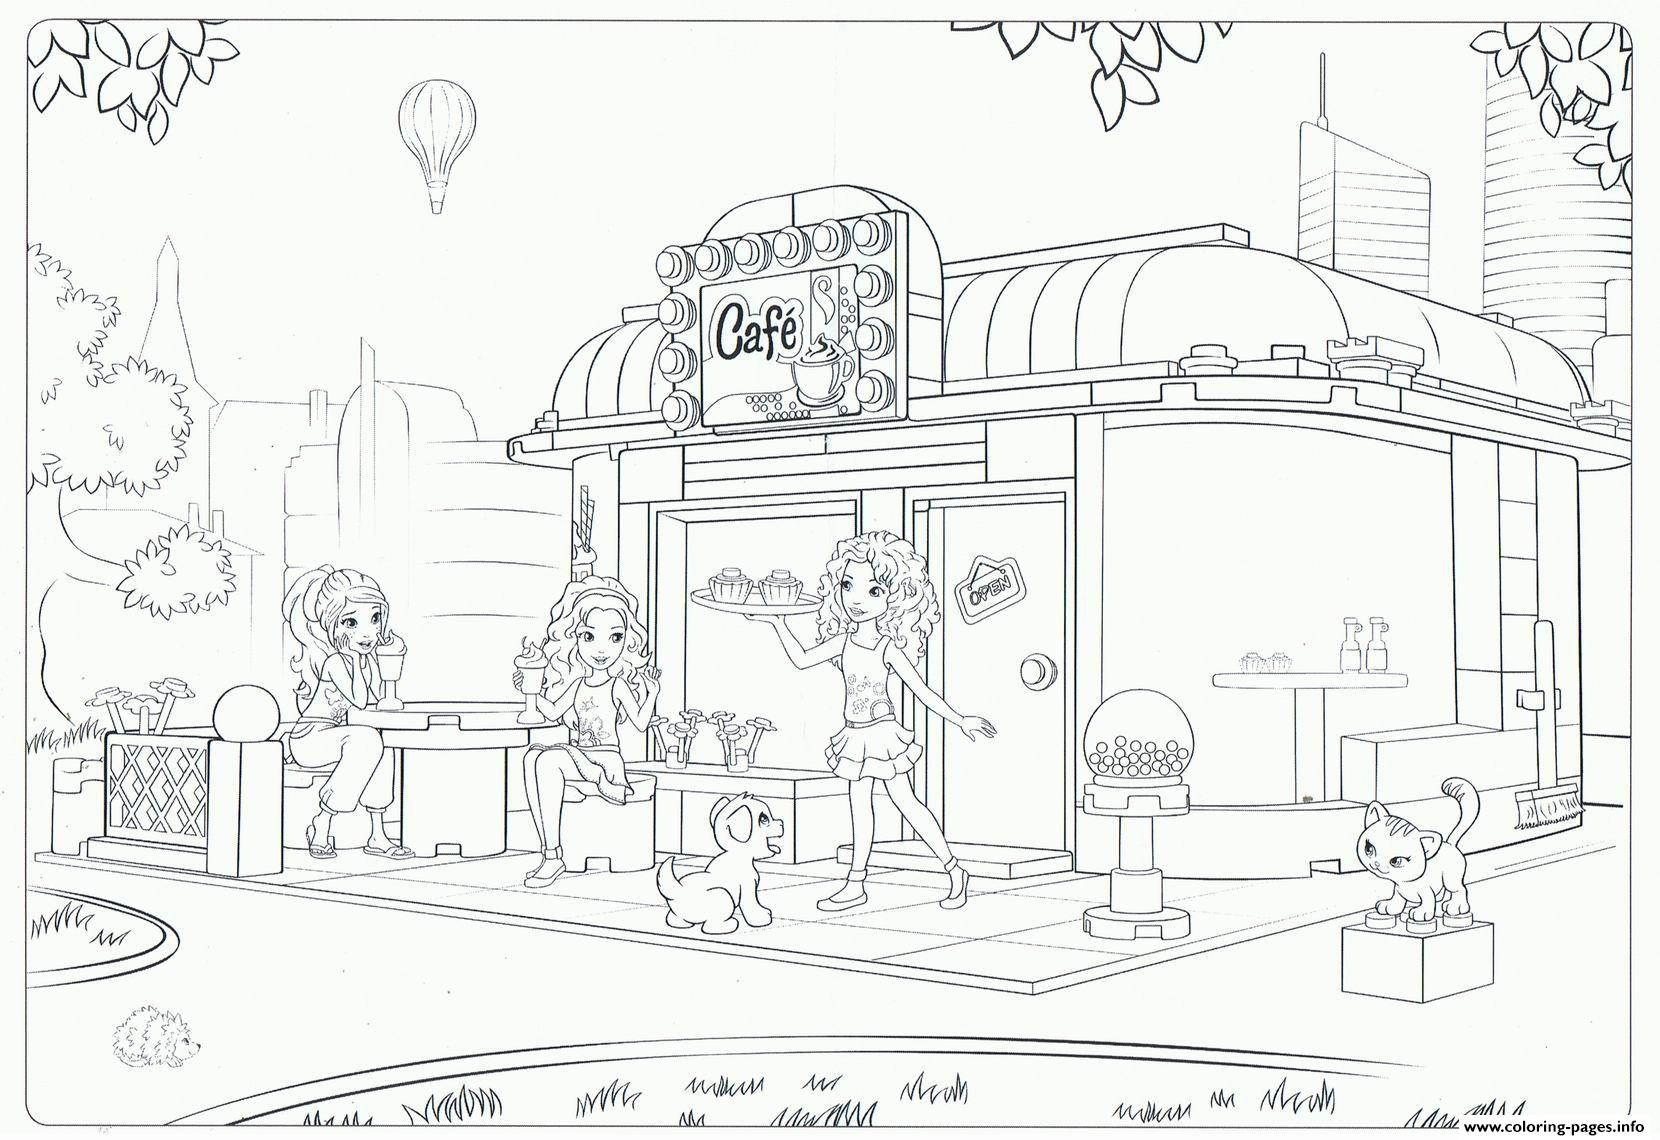 lego friends cafe coloring pages - Lego Friends Coloring Pages